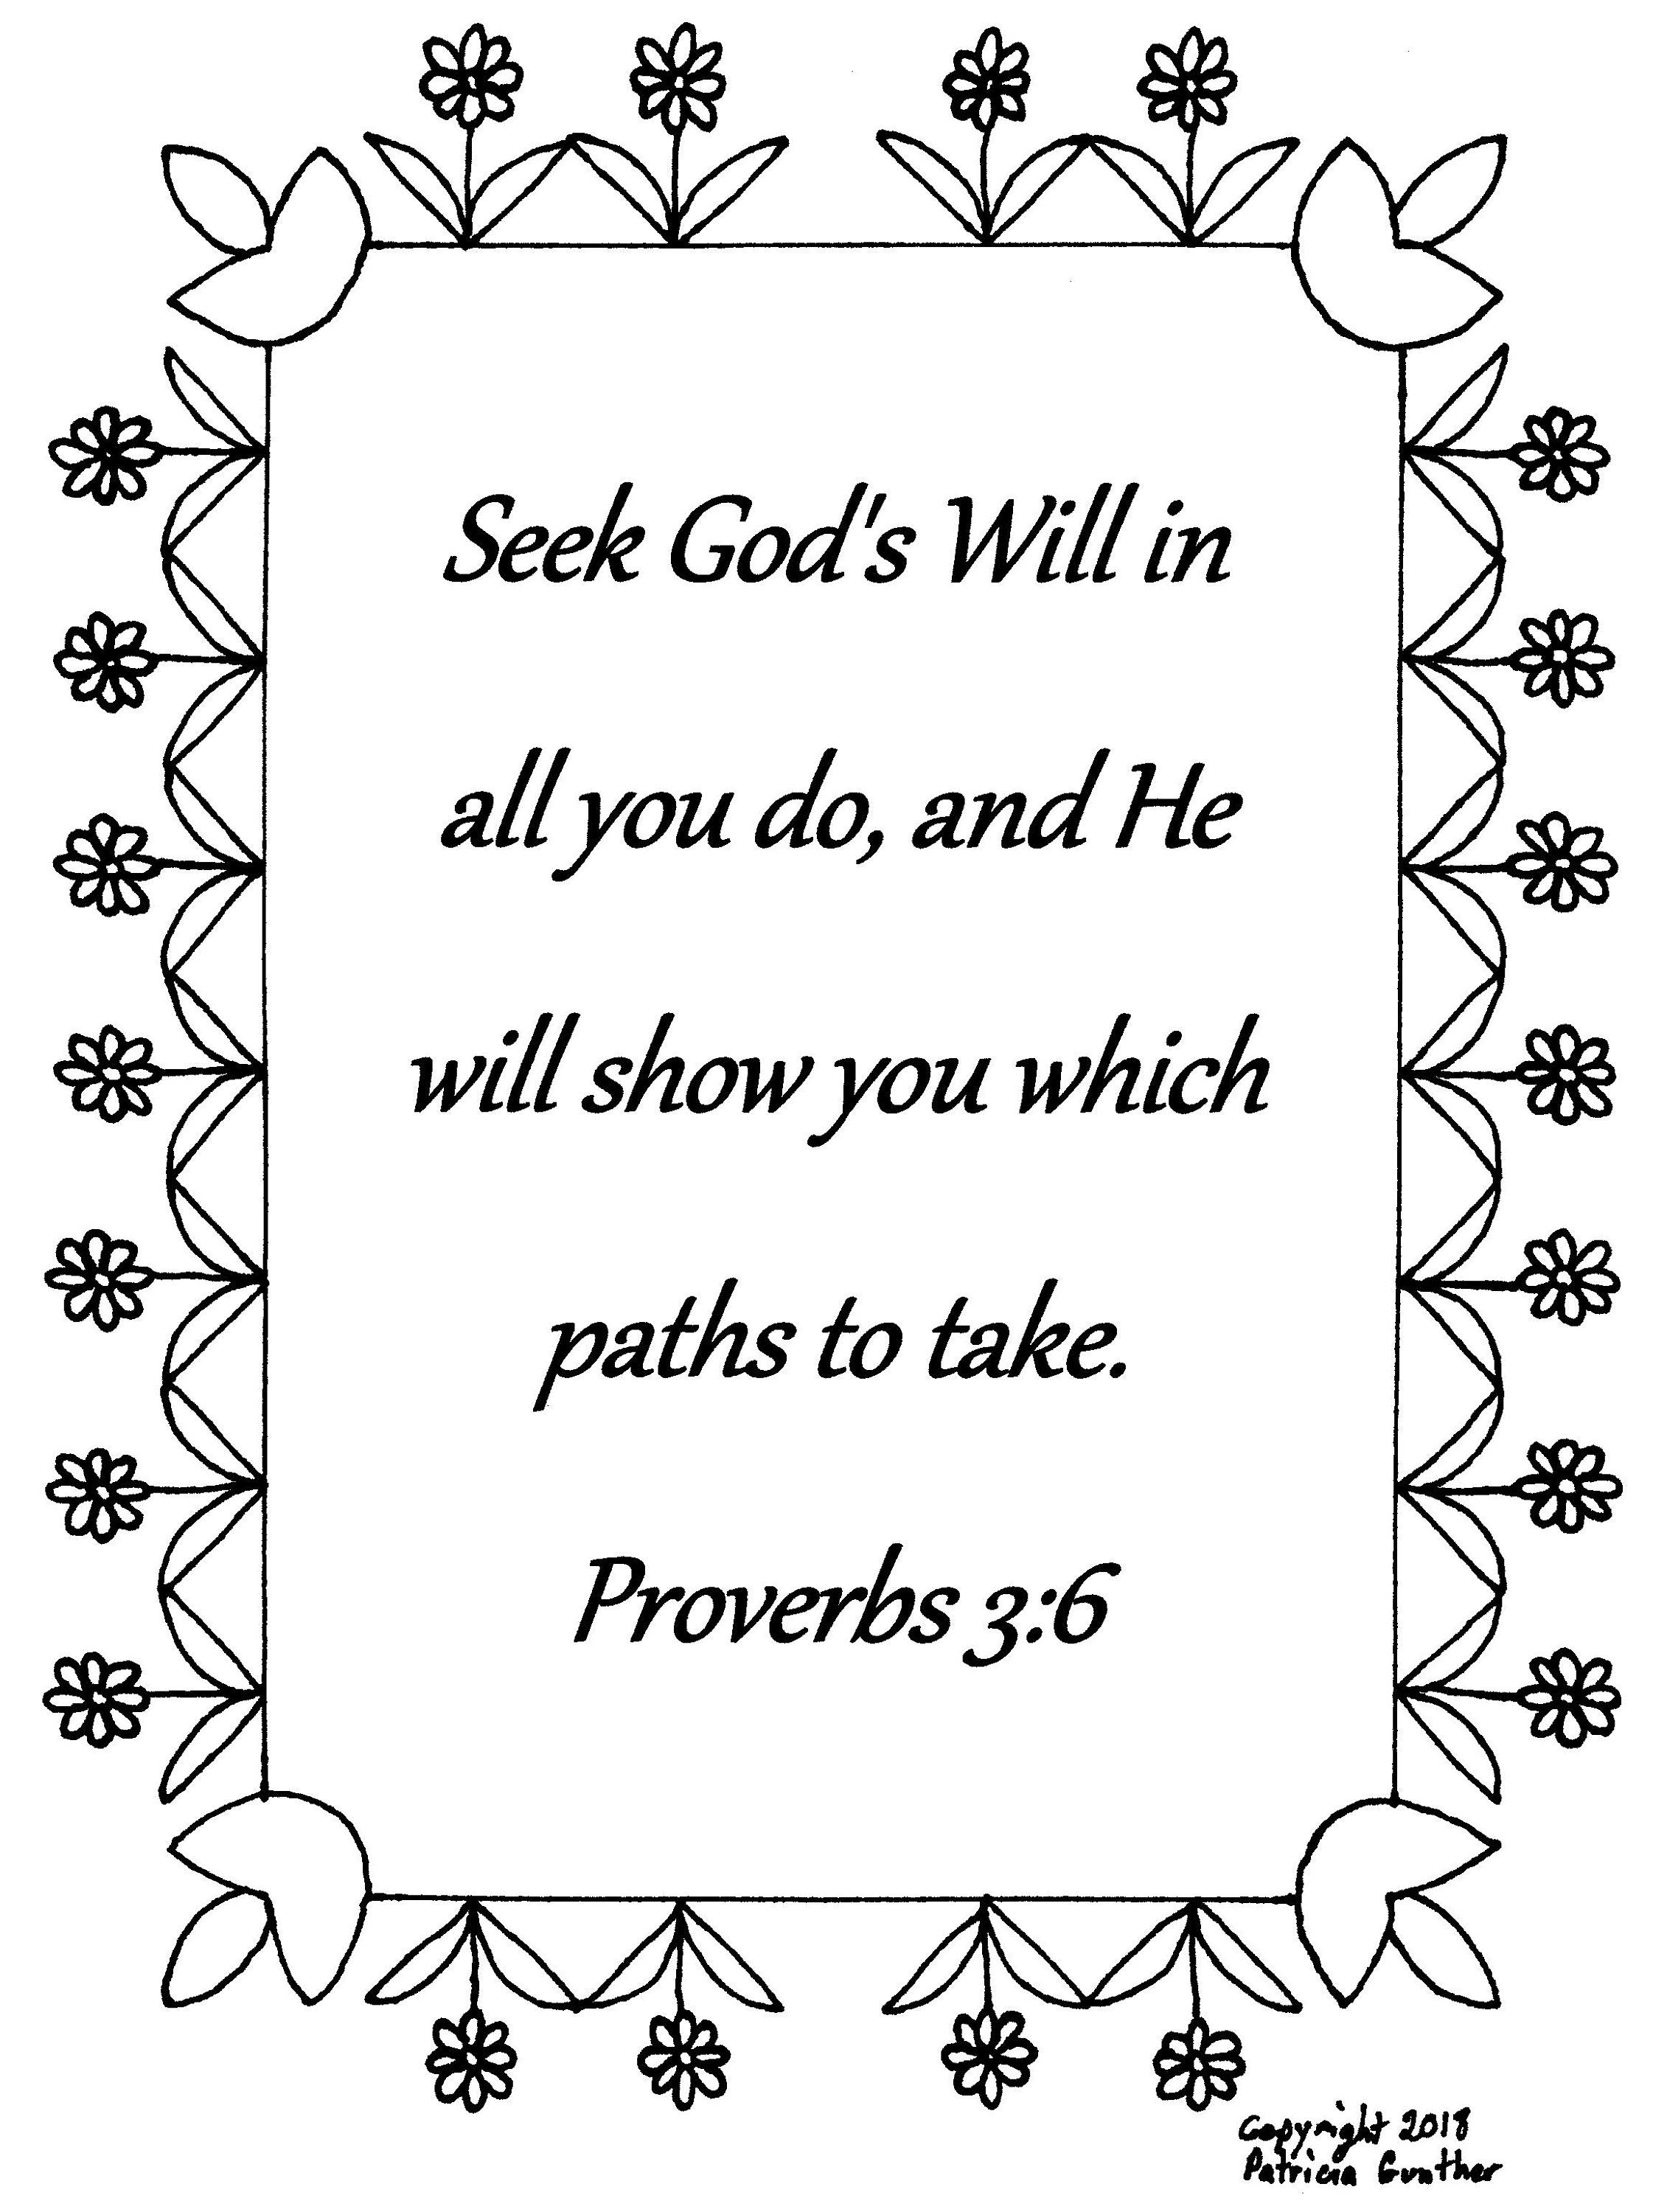 Seek God S Will In All You Do Proverbs 3 6 Bible Verse Coloring